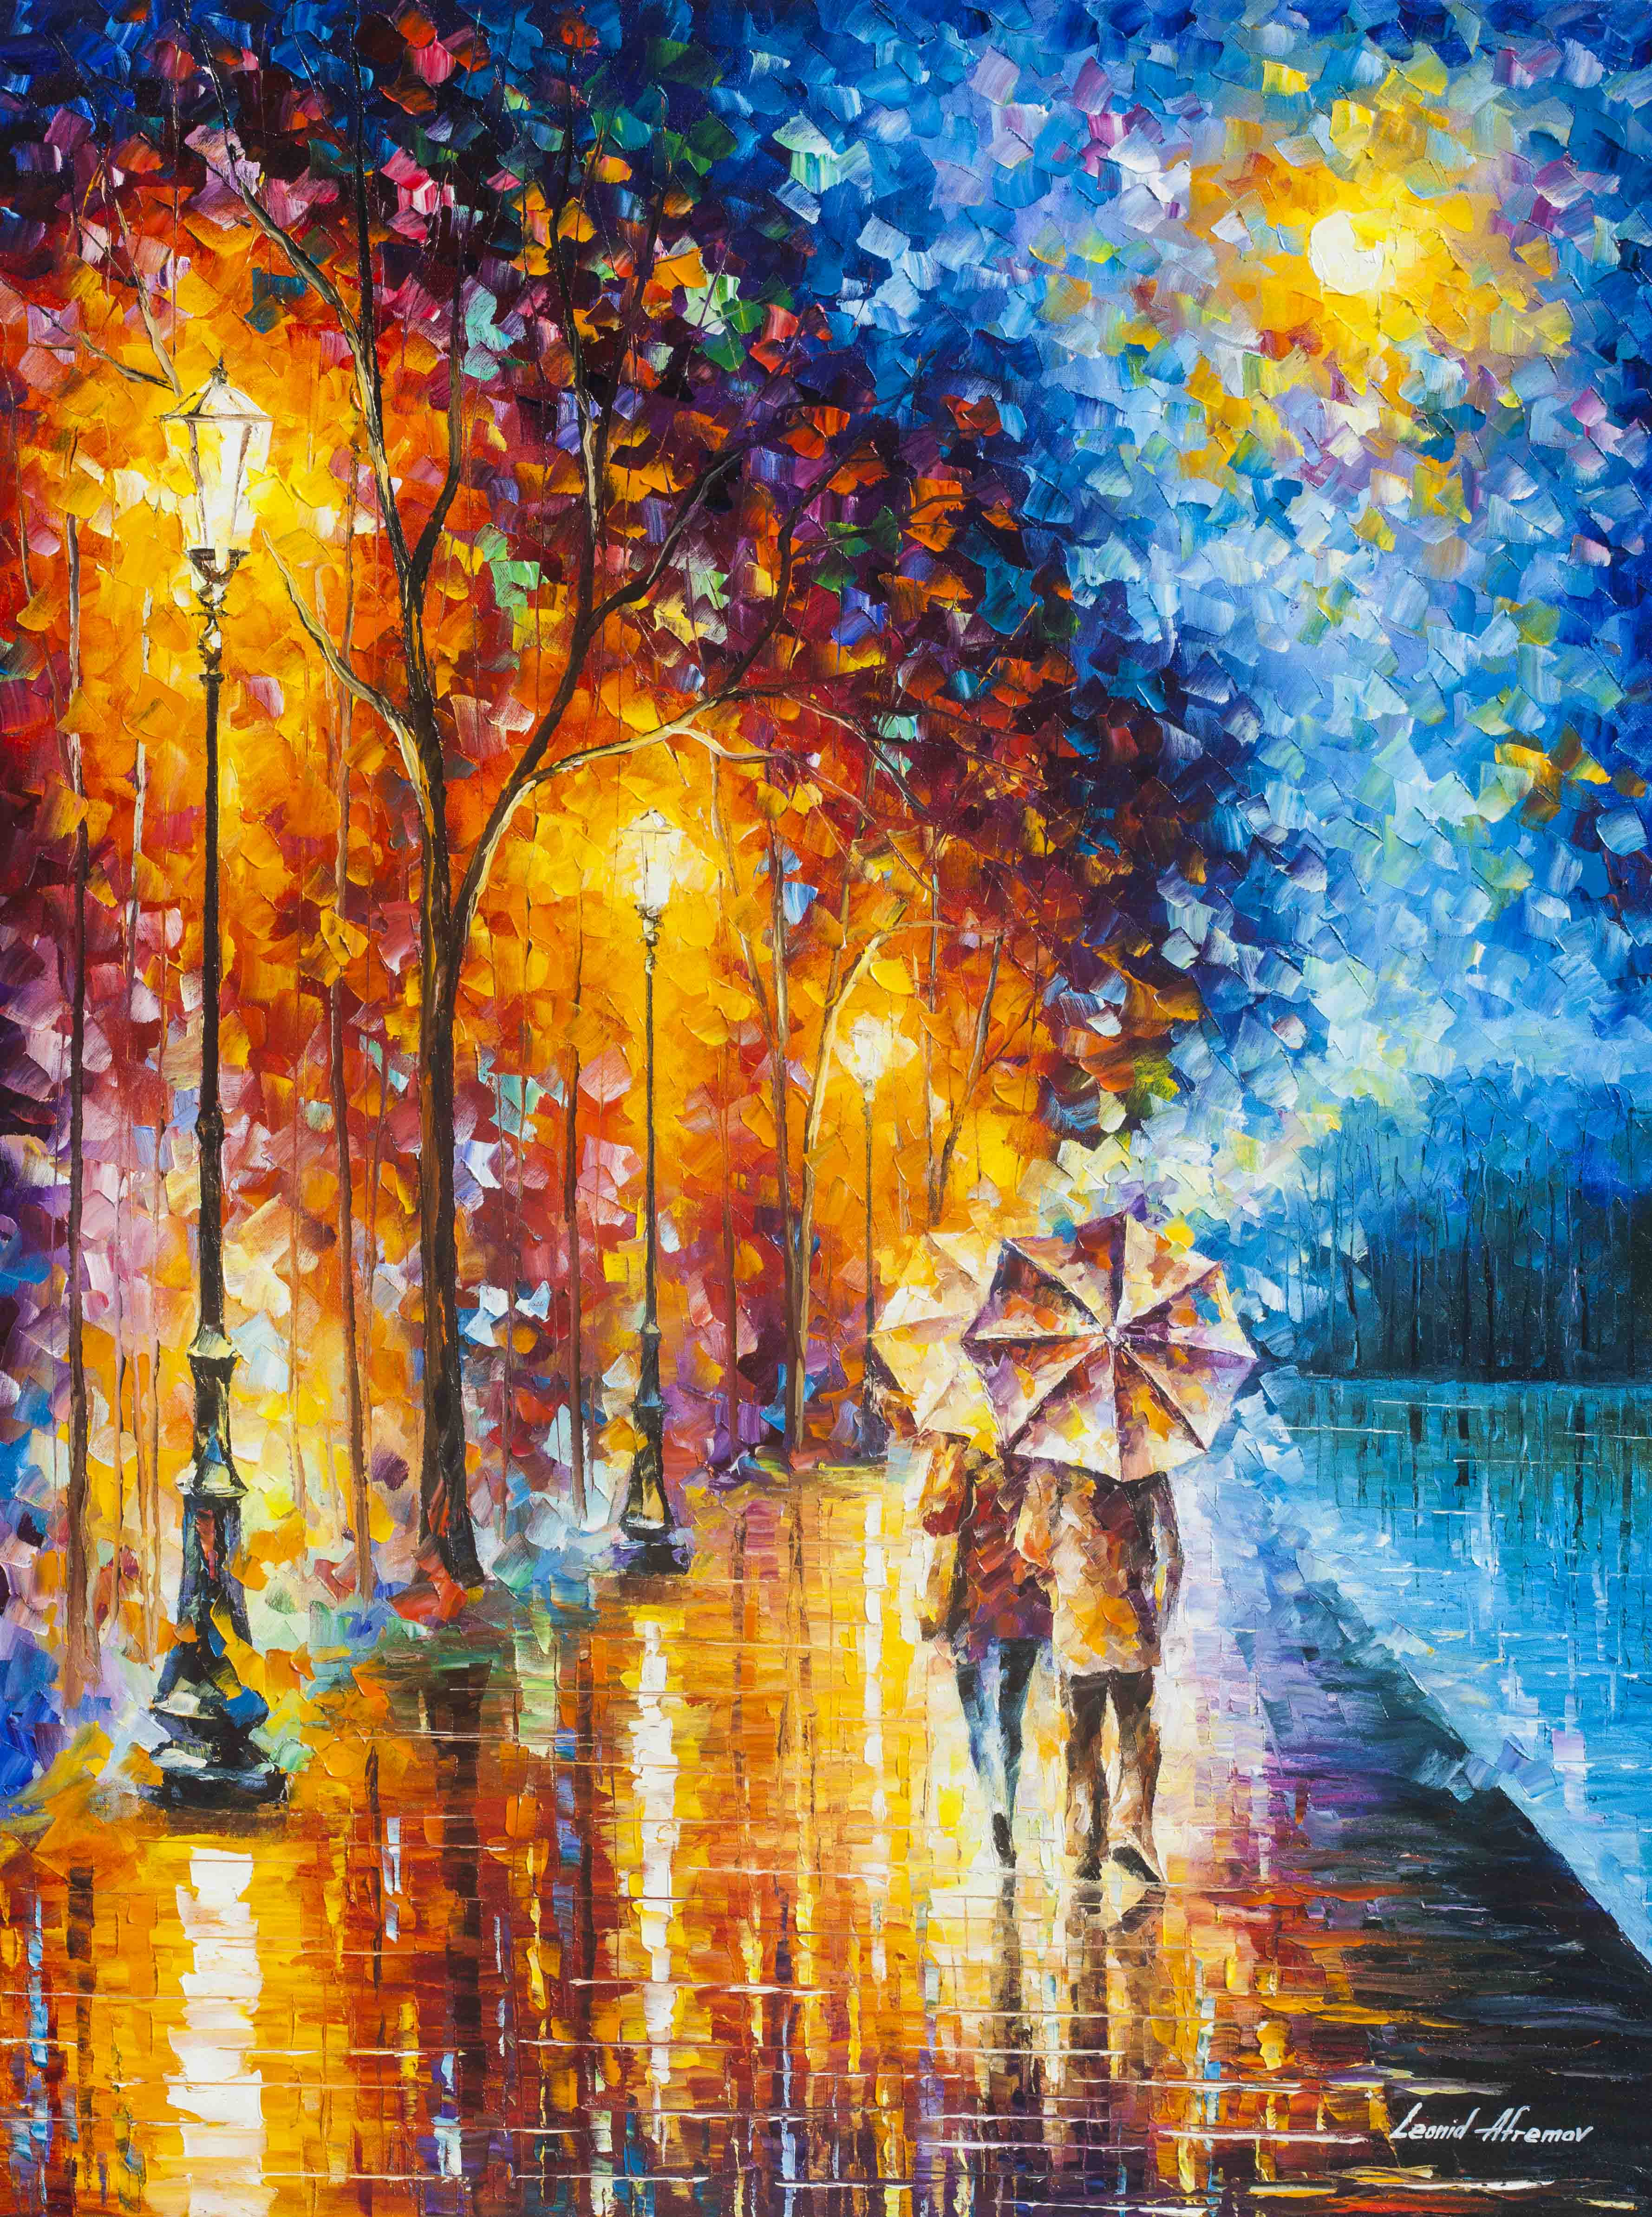 Painting S Love By The Lake 2 Palette Knife Oil Painting On Canvas